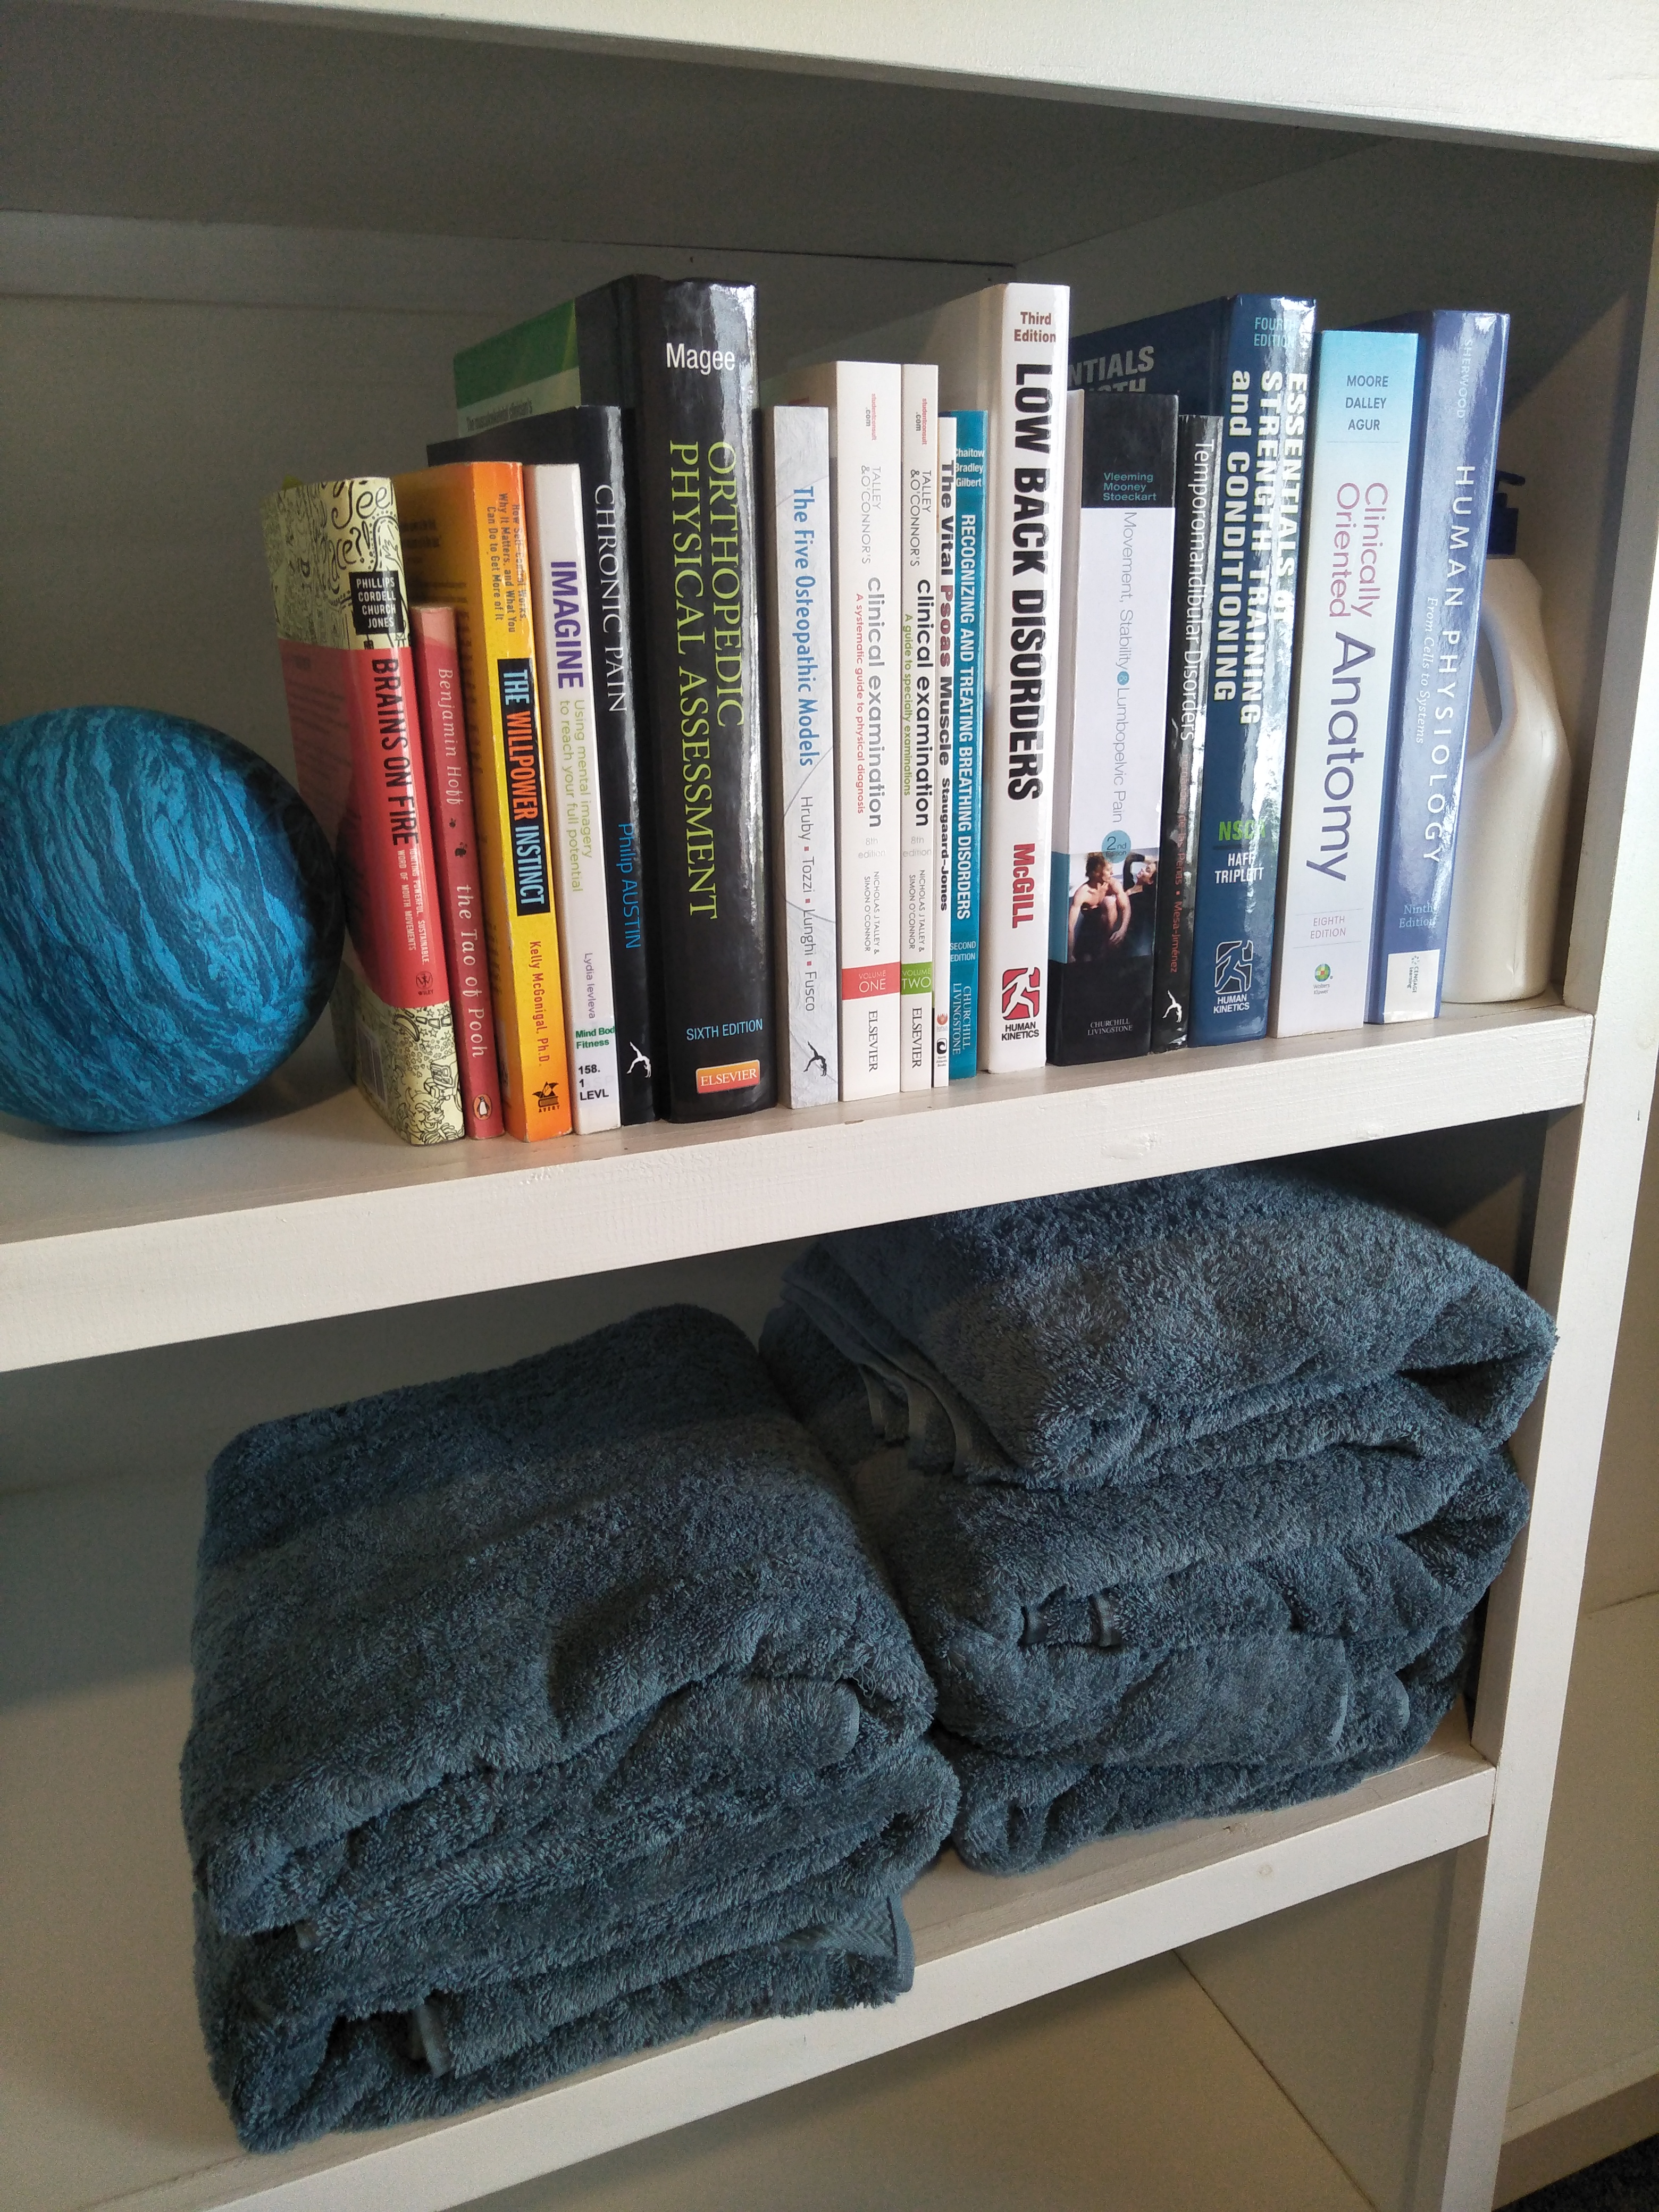 Books and towels.